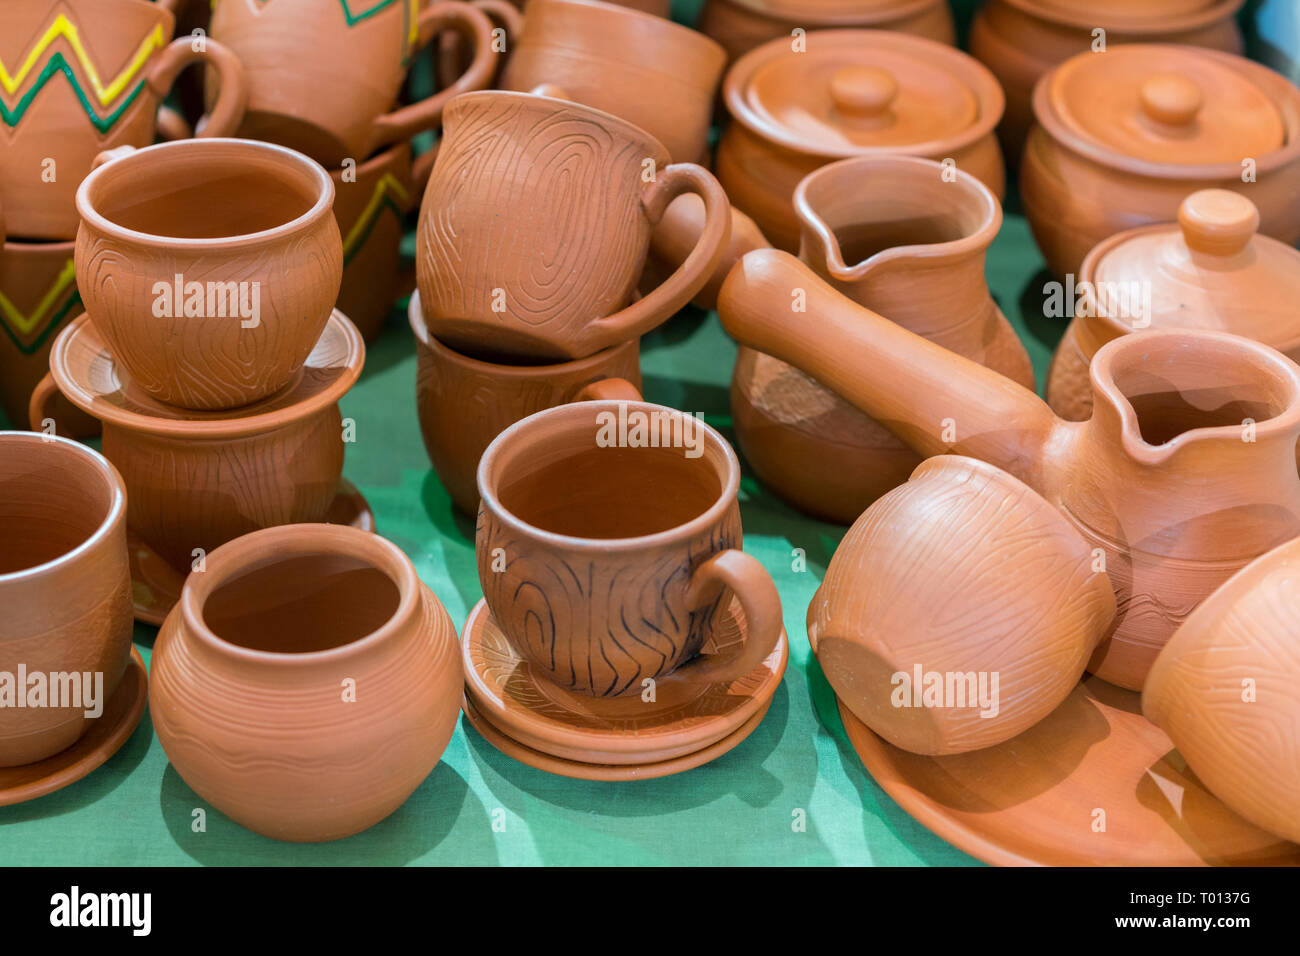 Terracotta Plates High Resolution Stock Photography And Images Alamy